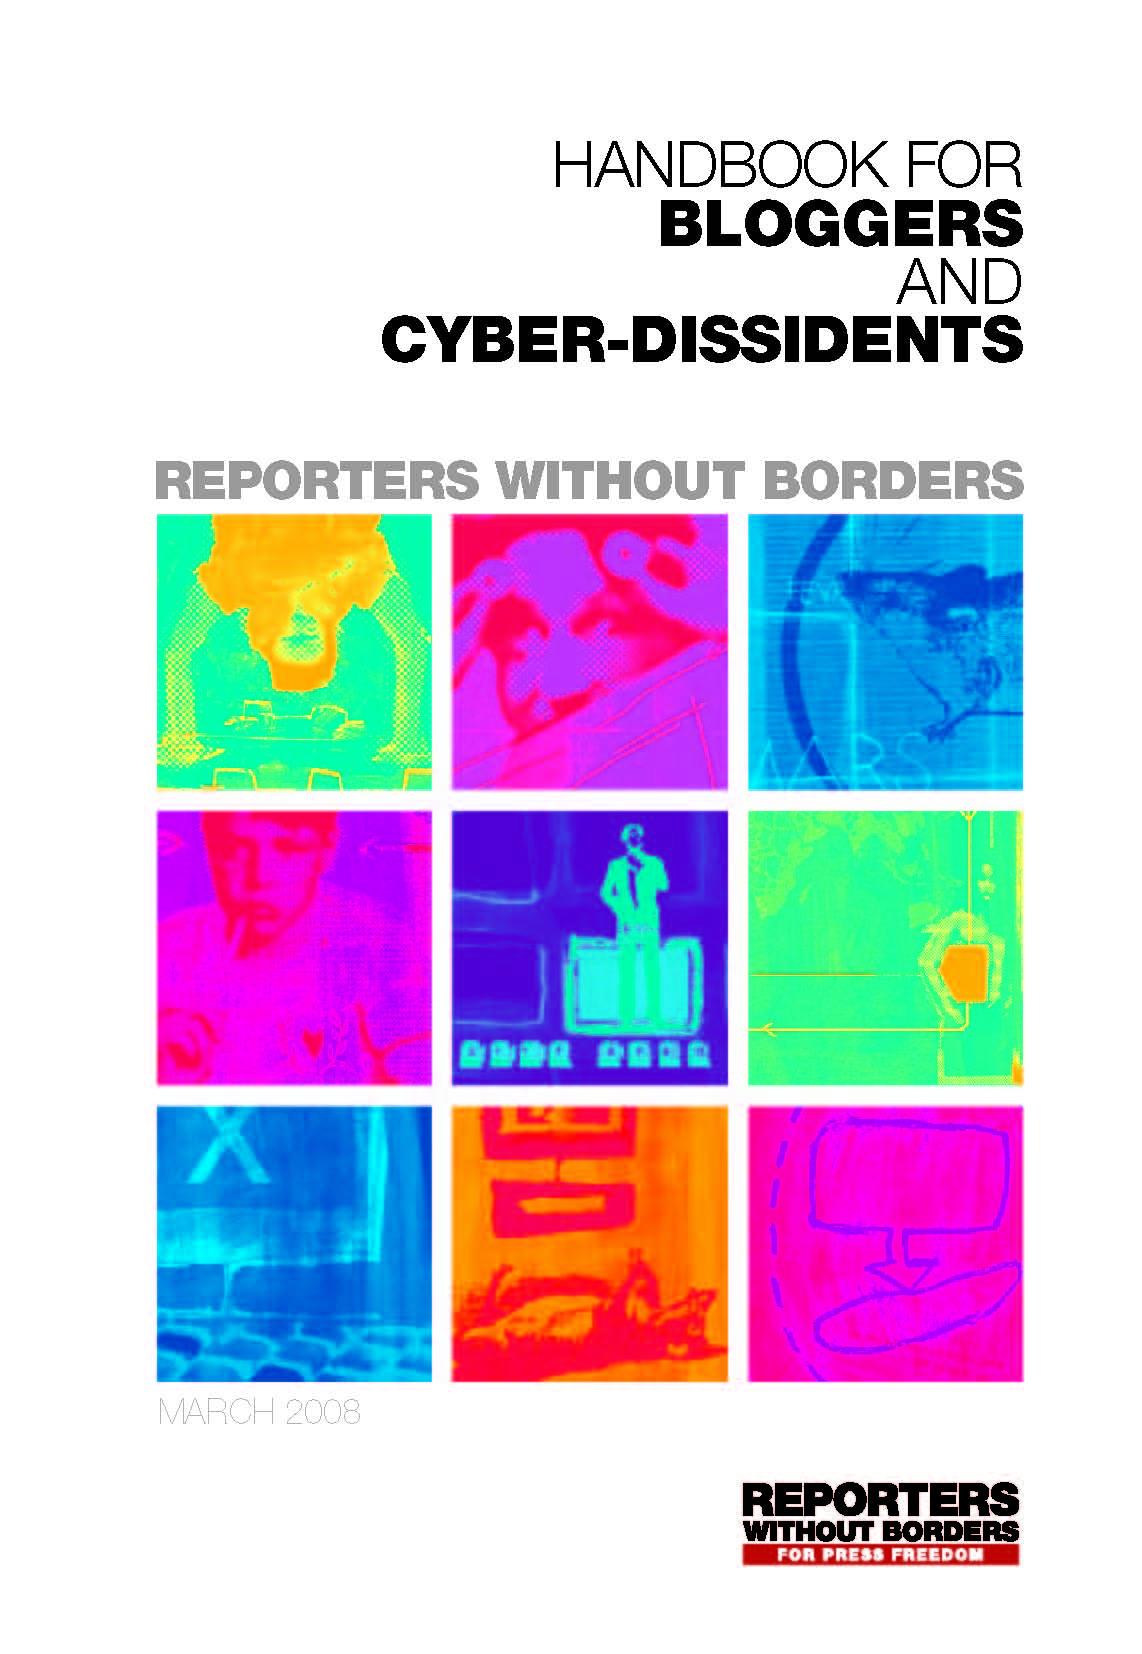 New version of Handbook for Bloggers and Cyber-Dissidents